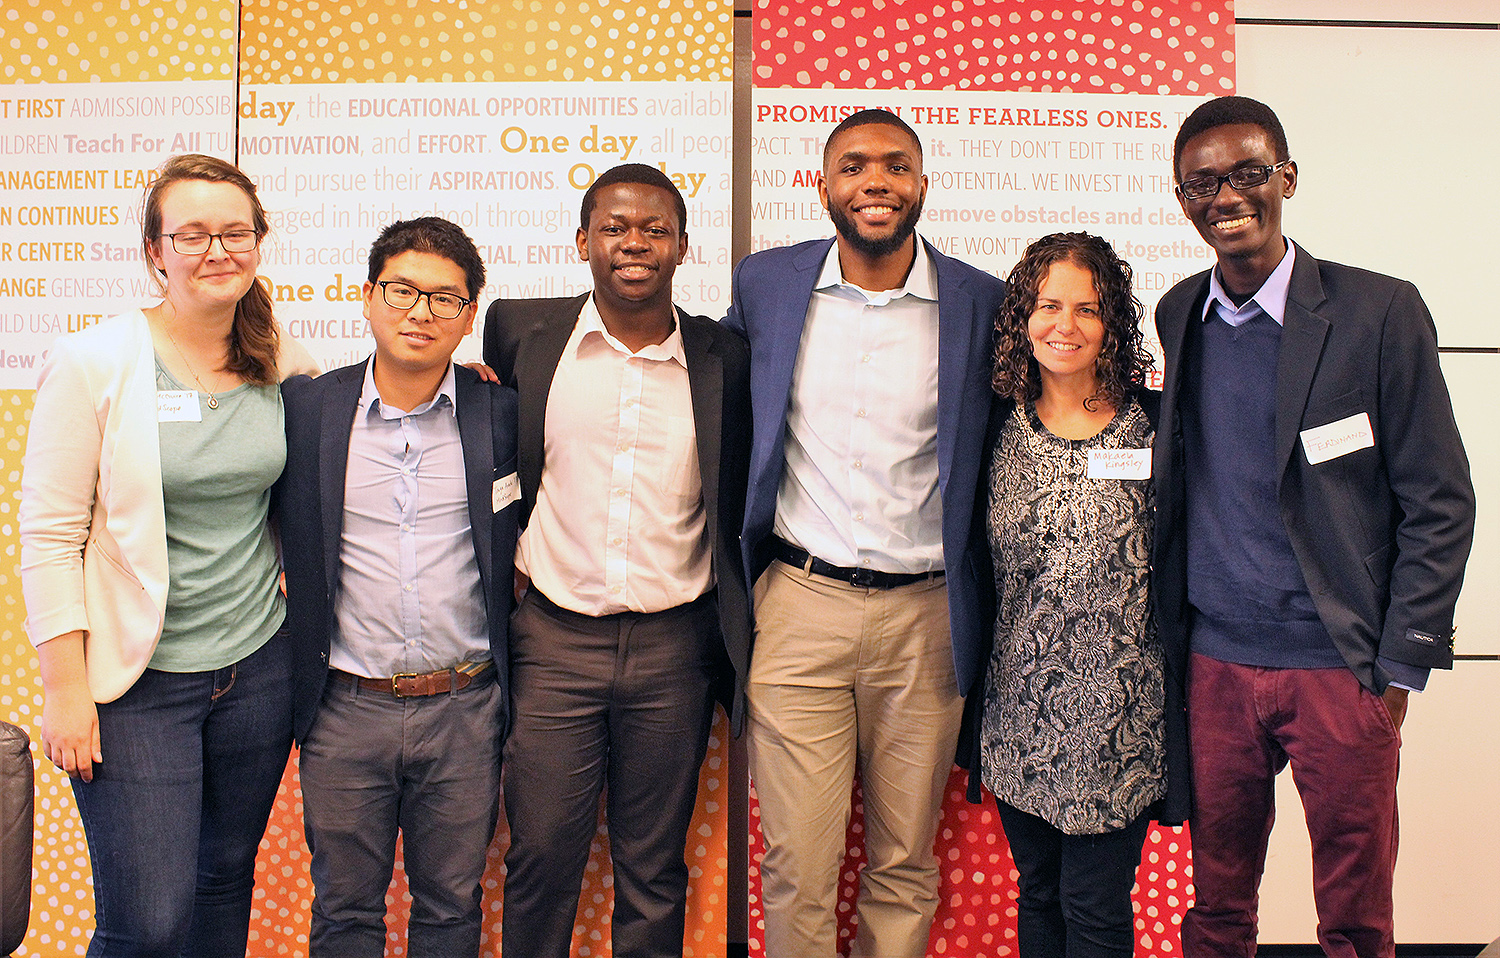 Siri McGuire '17, Taiga Araki '17, Alvin Chitena '19, AJ Wilson '18, Makaela Kingsley '98 (director of the Patricelli Center for Social Entrepreneurship) and Ferdinand Quayson '20 attended the Clinton Global Initiative University (CGI U) Conference in Boston.